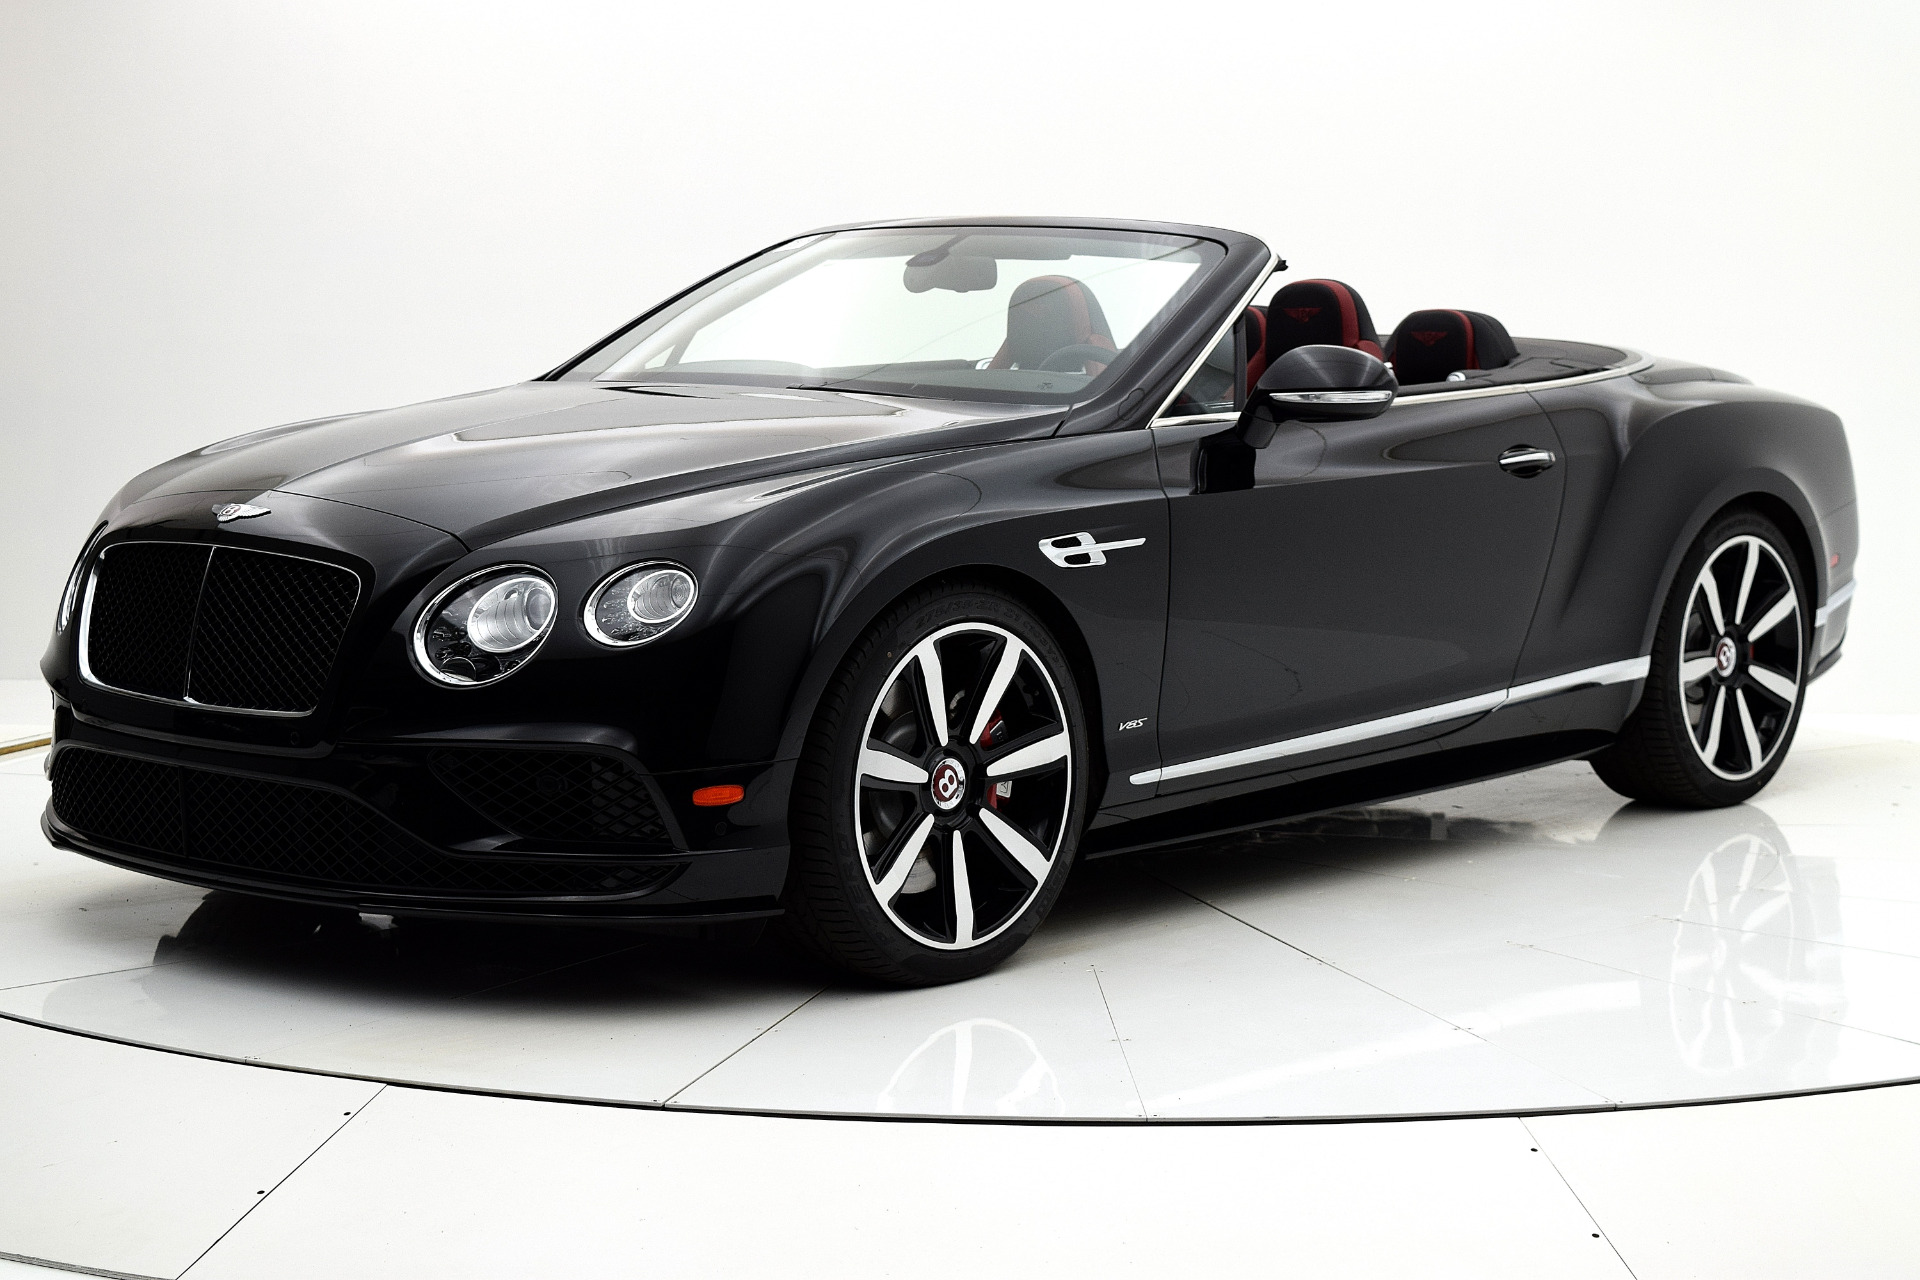 Used 2017 Bentley Continental GT V8 S Convertible for sale Sold at Bentley Palmyra N.J. in Palmyra NJ 08065 2